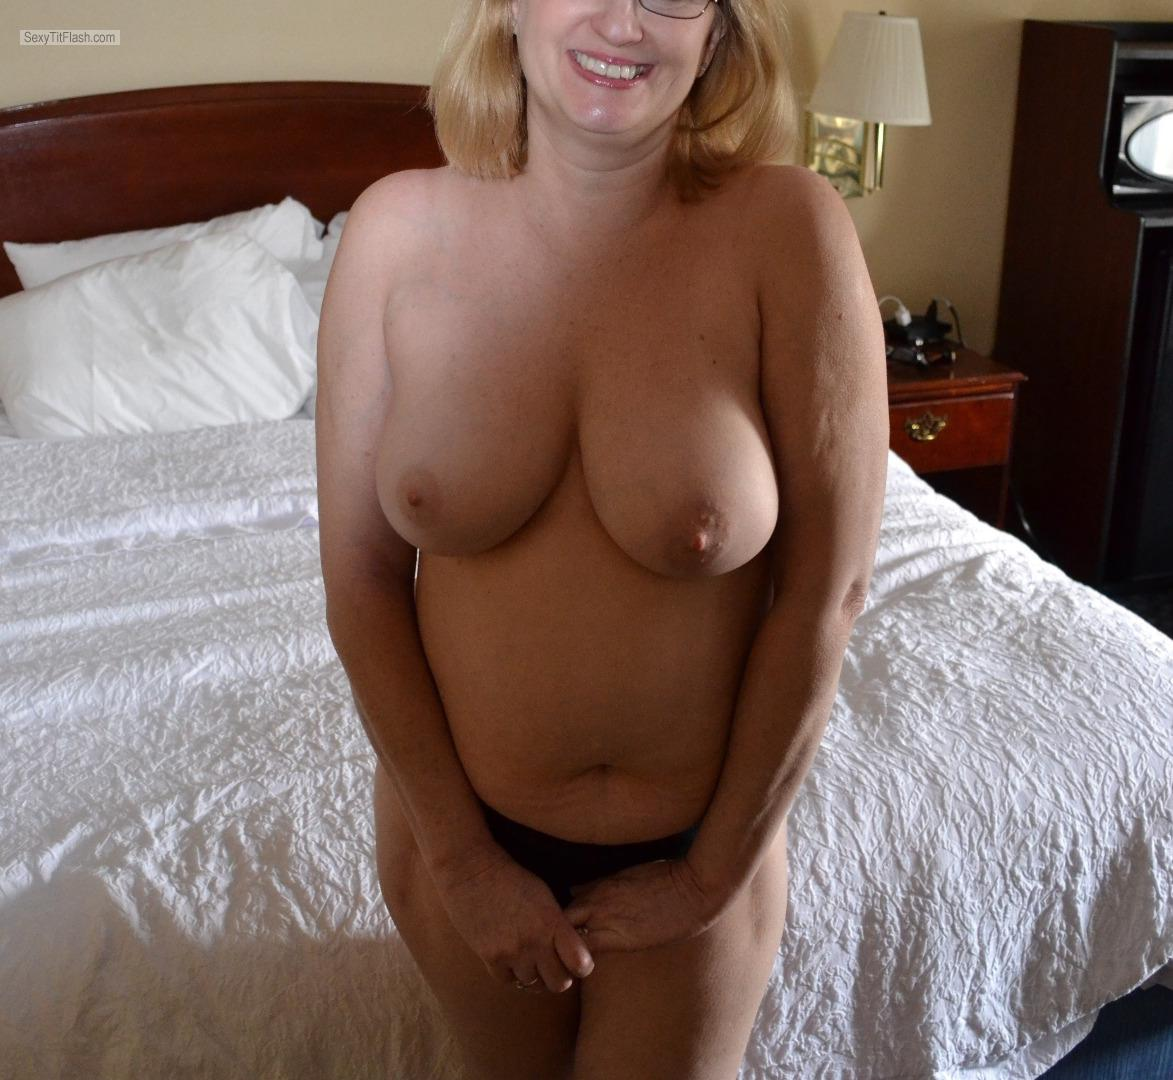 Tit Flash: My Big Tits - Sexy Sharon from United States